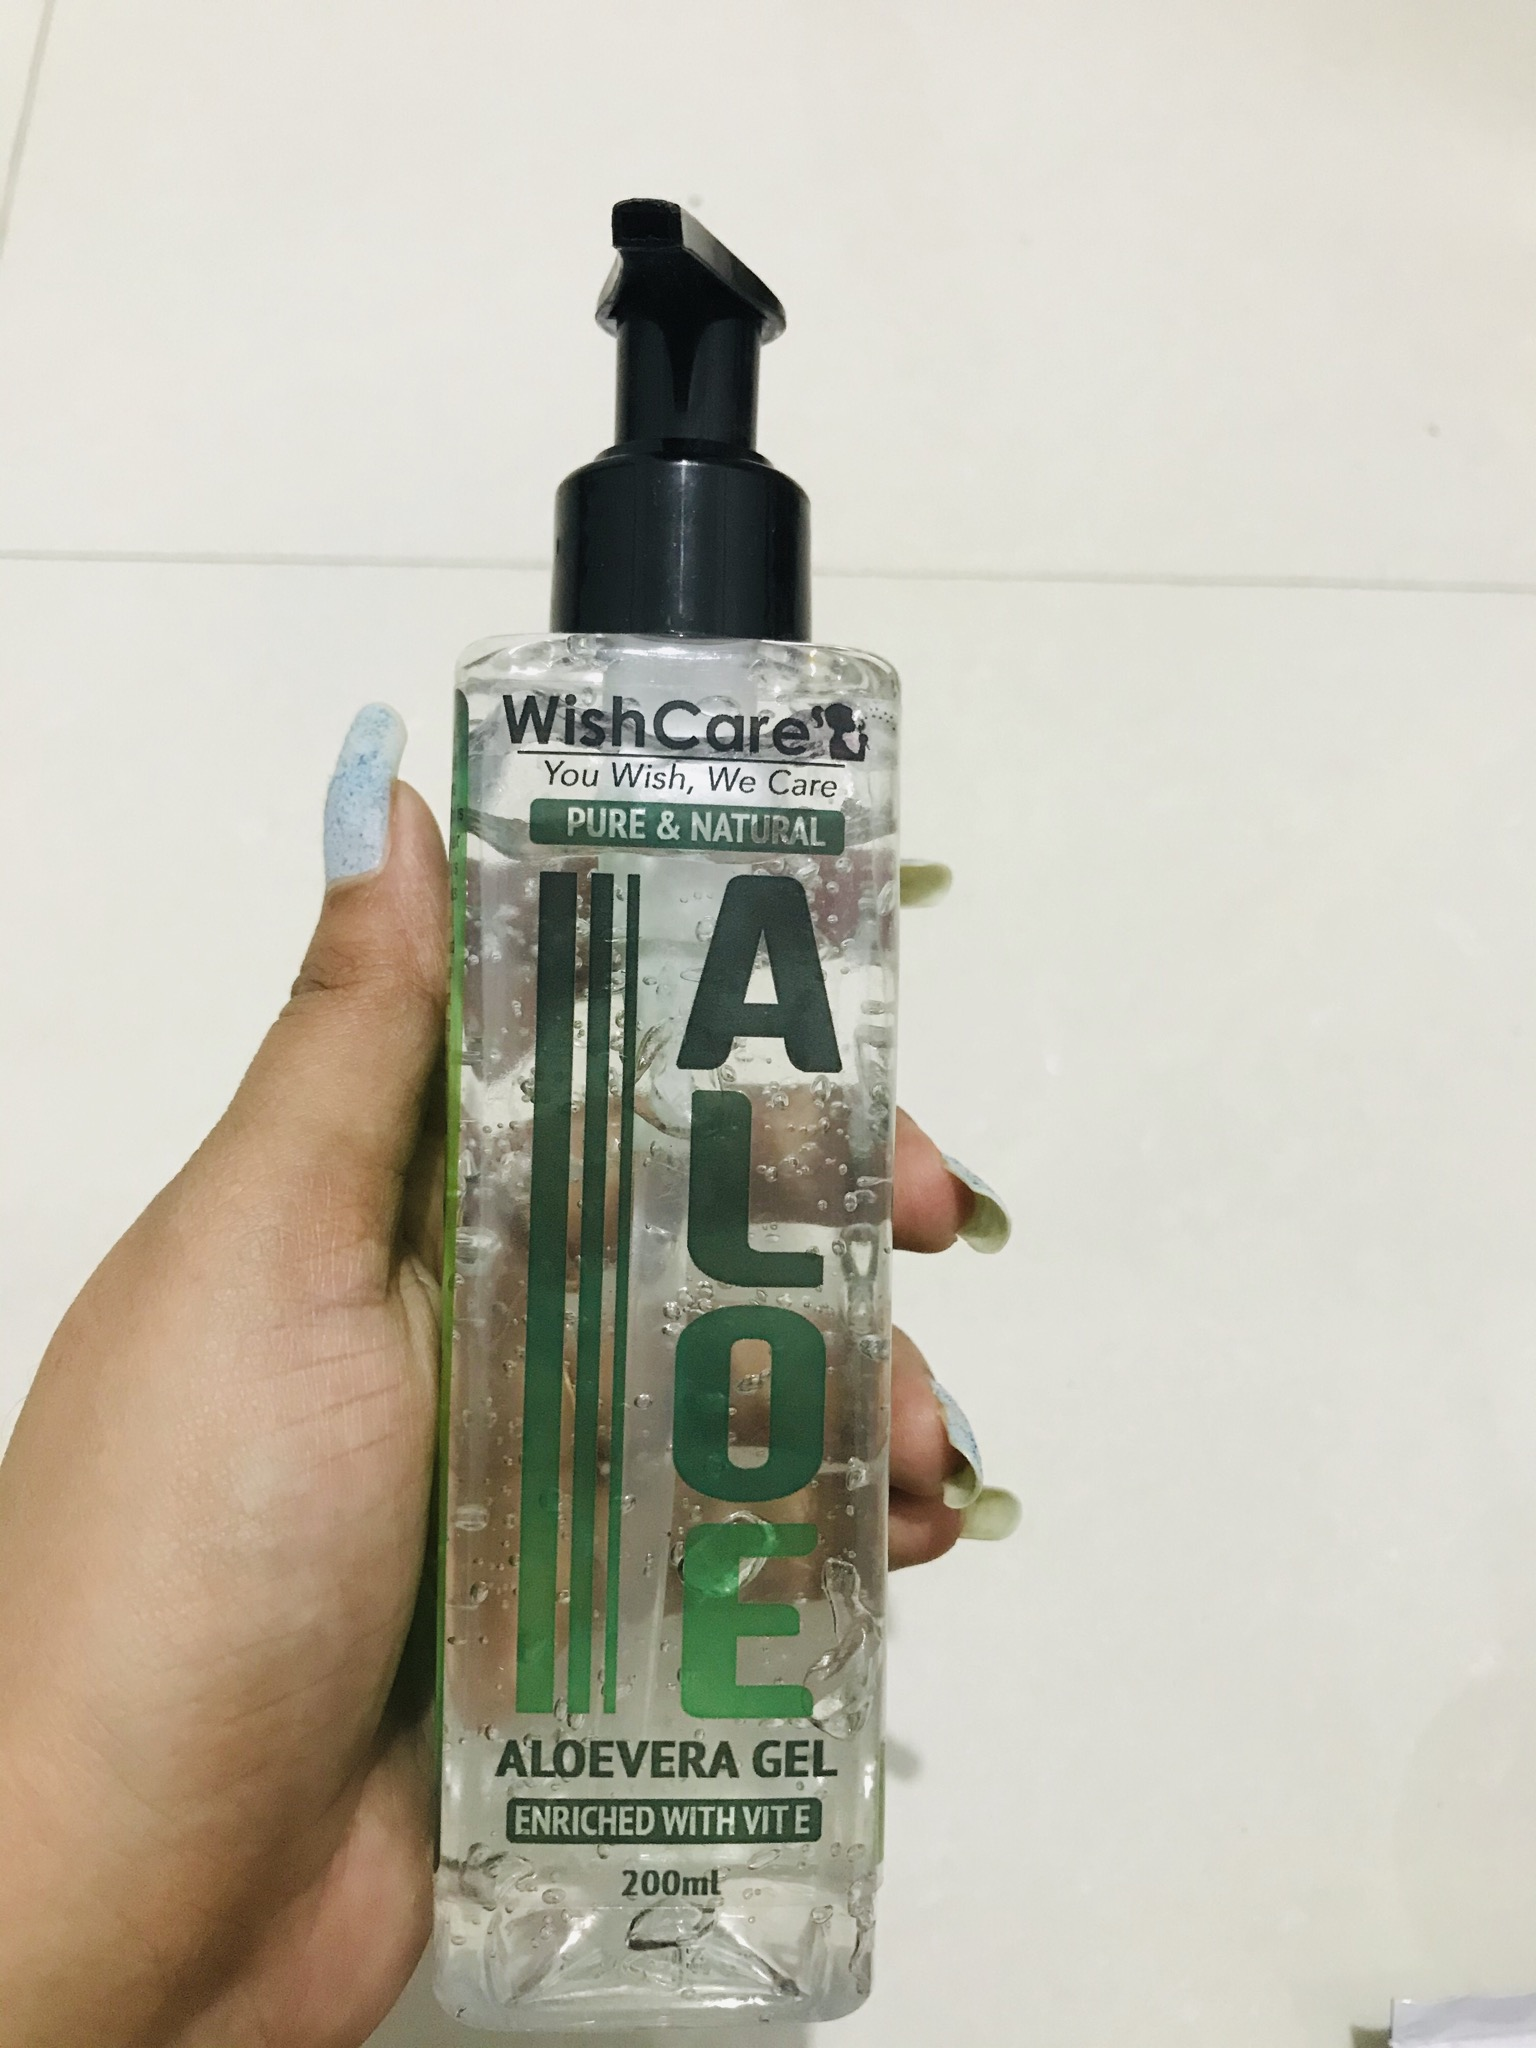 WishCare Pure & Natural Aloe Vera Gel -Good for skin and hair both-By ikhu